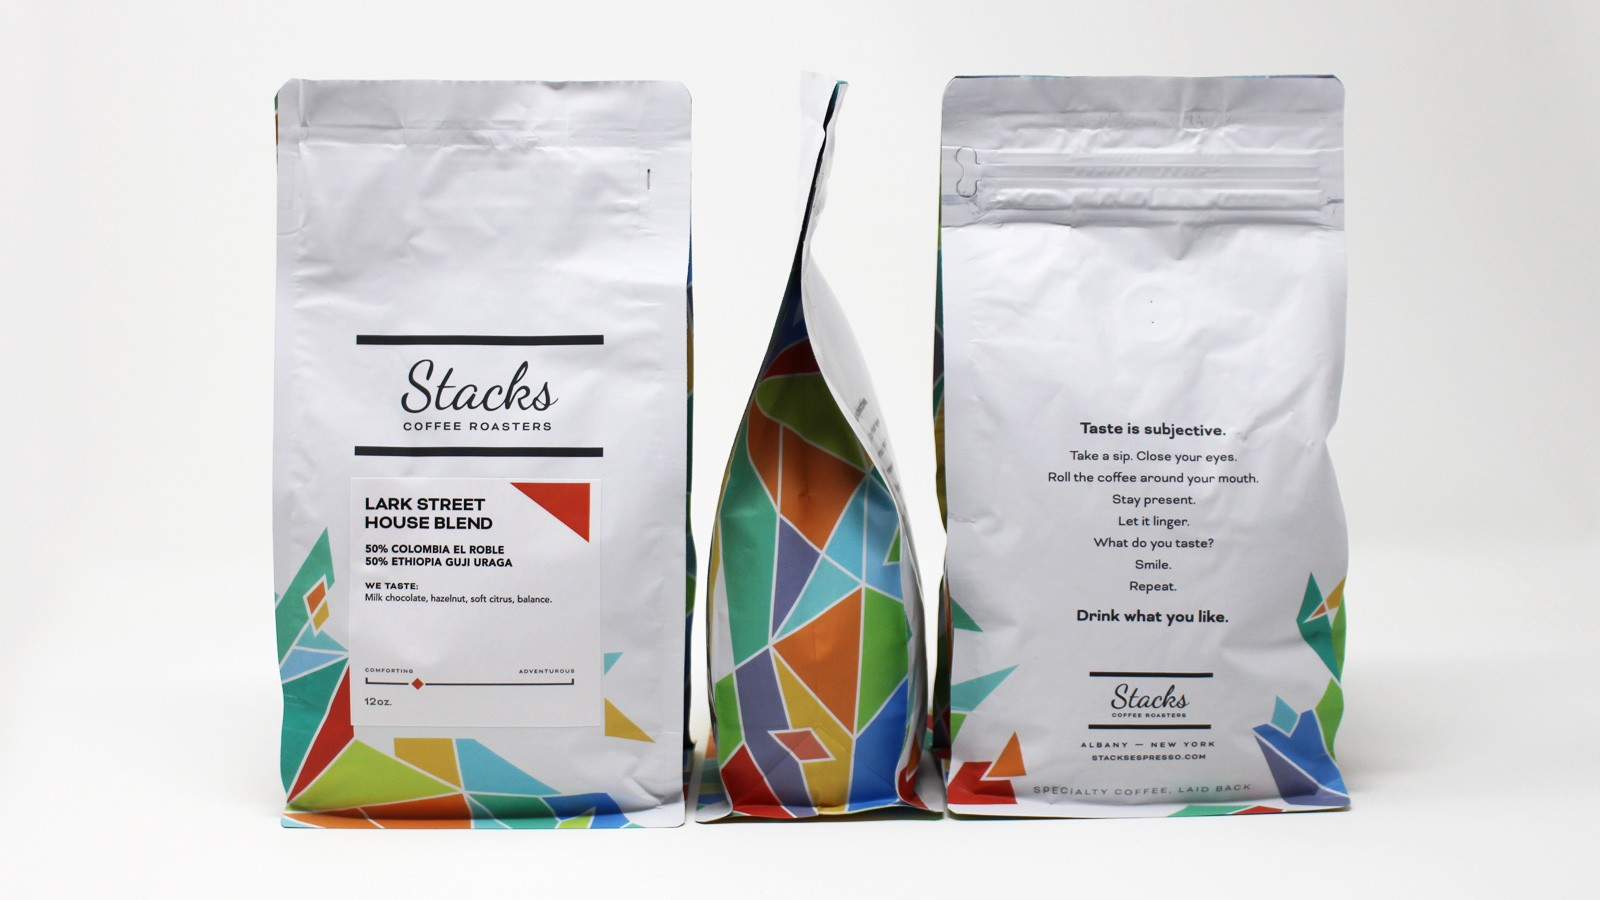 Stacks Coffee Roasters